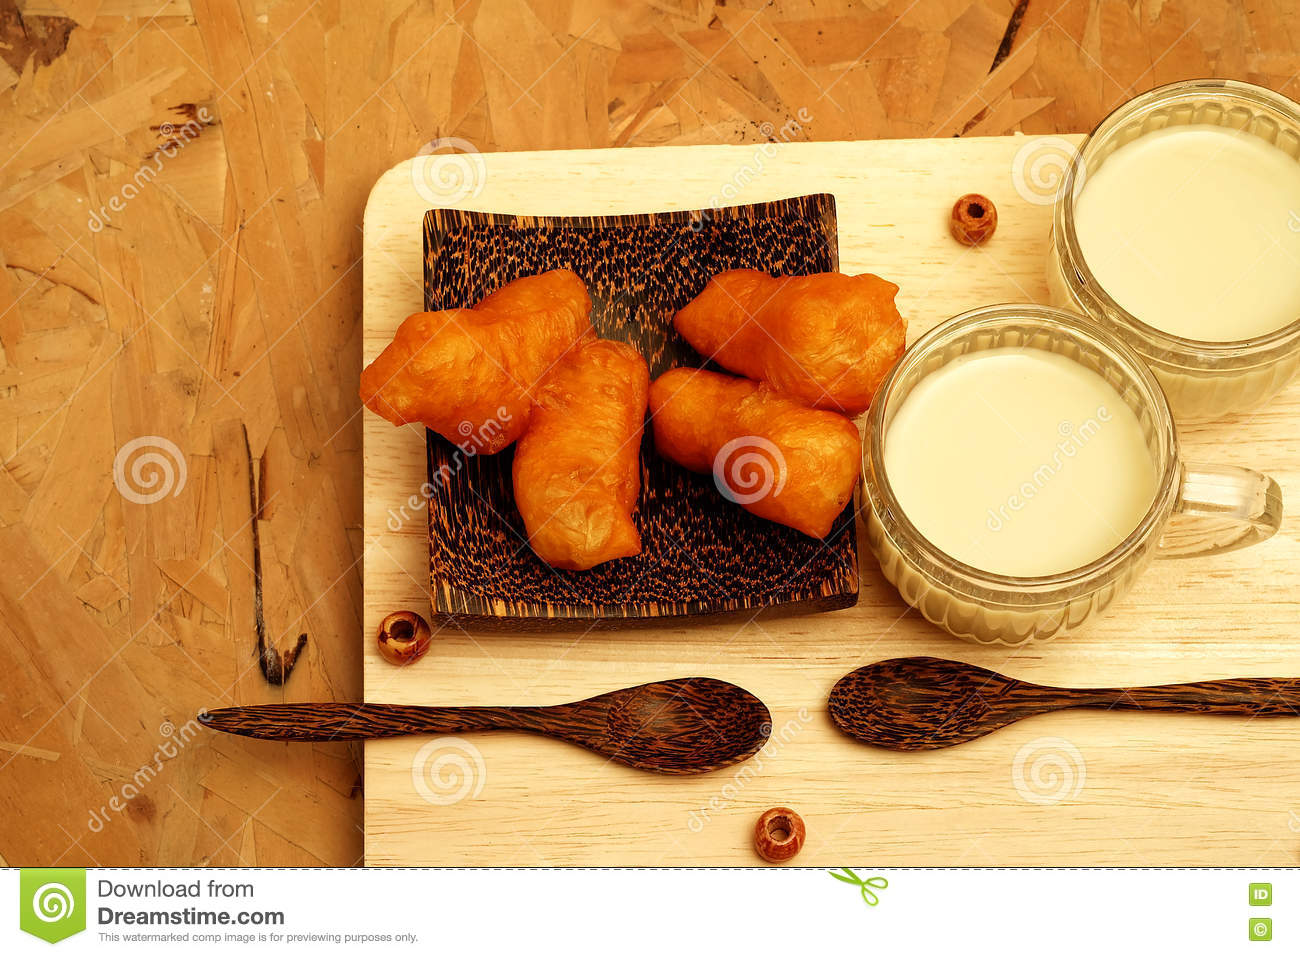 Served Breakfast With Deep-fried Dough Stick And Soybean Milk In The